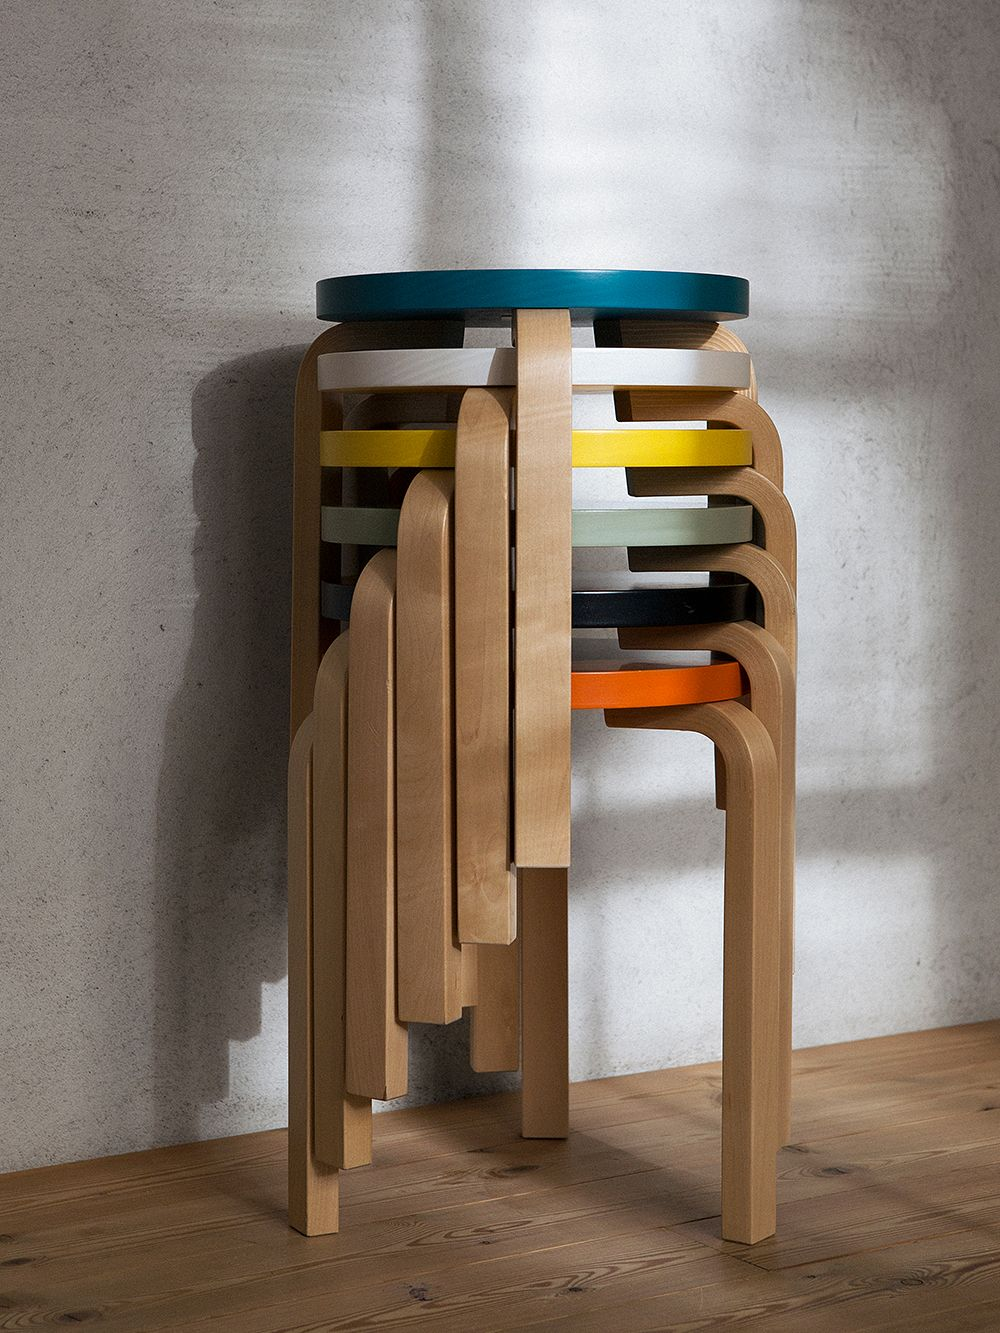 Artek's stool 60 stacked in a pile in different colors.